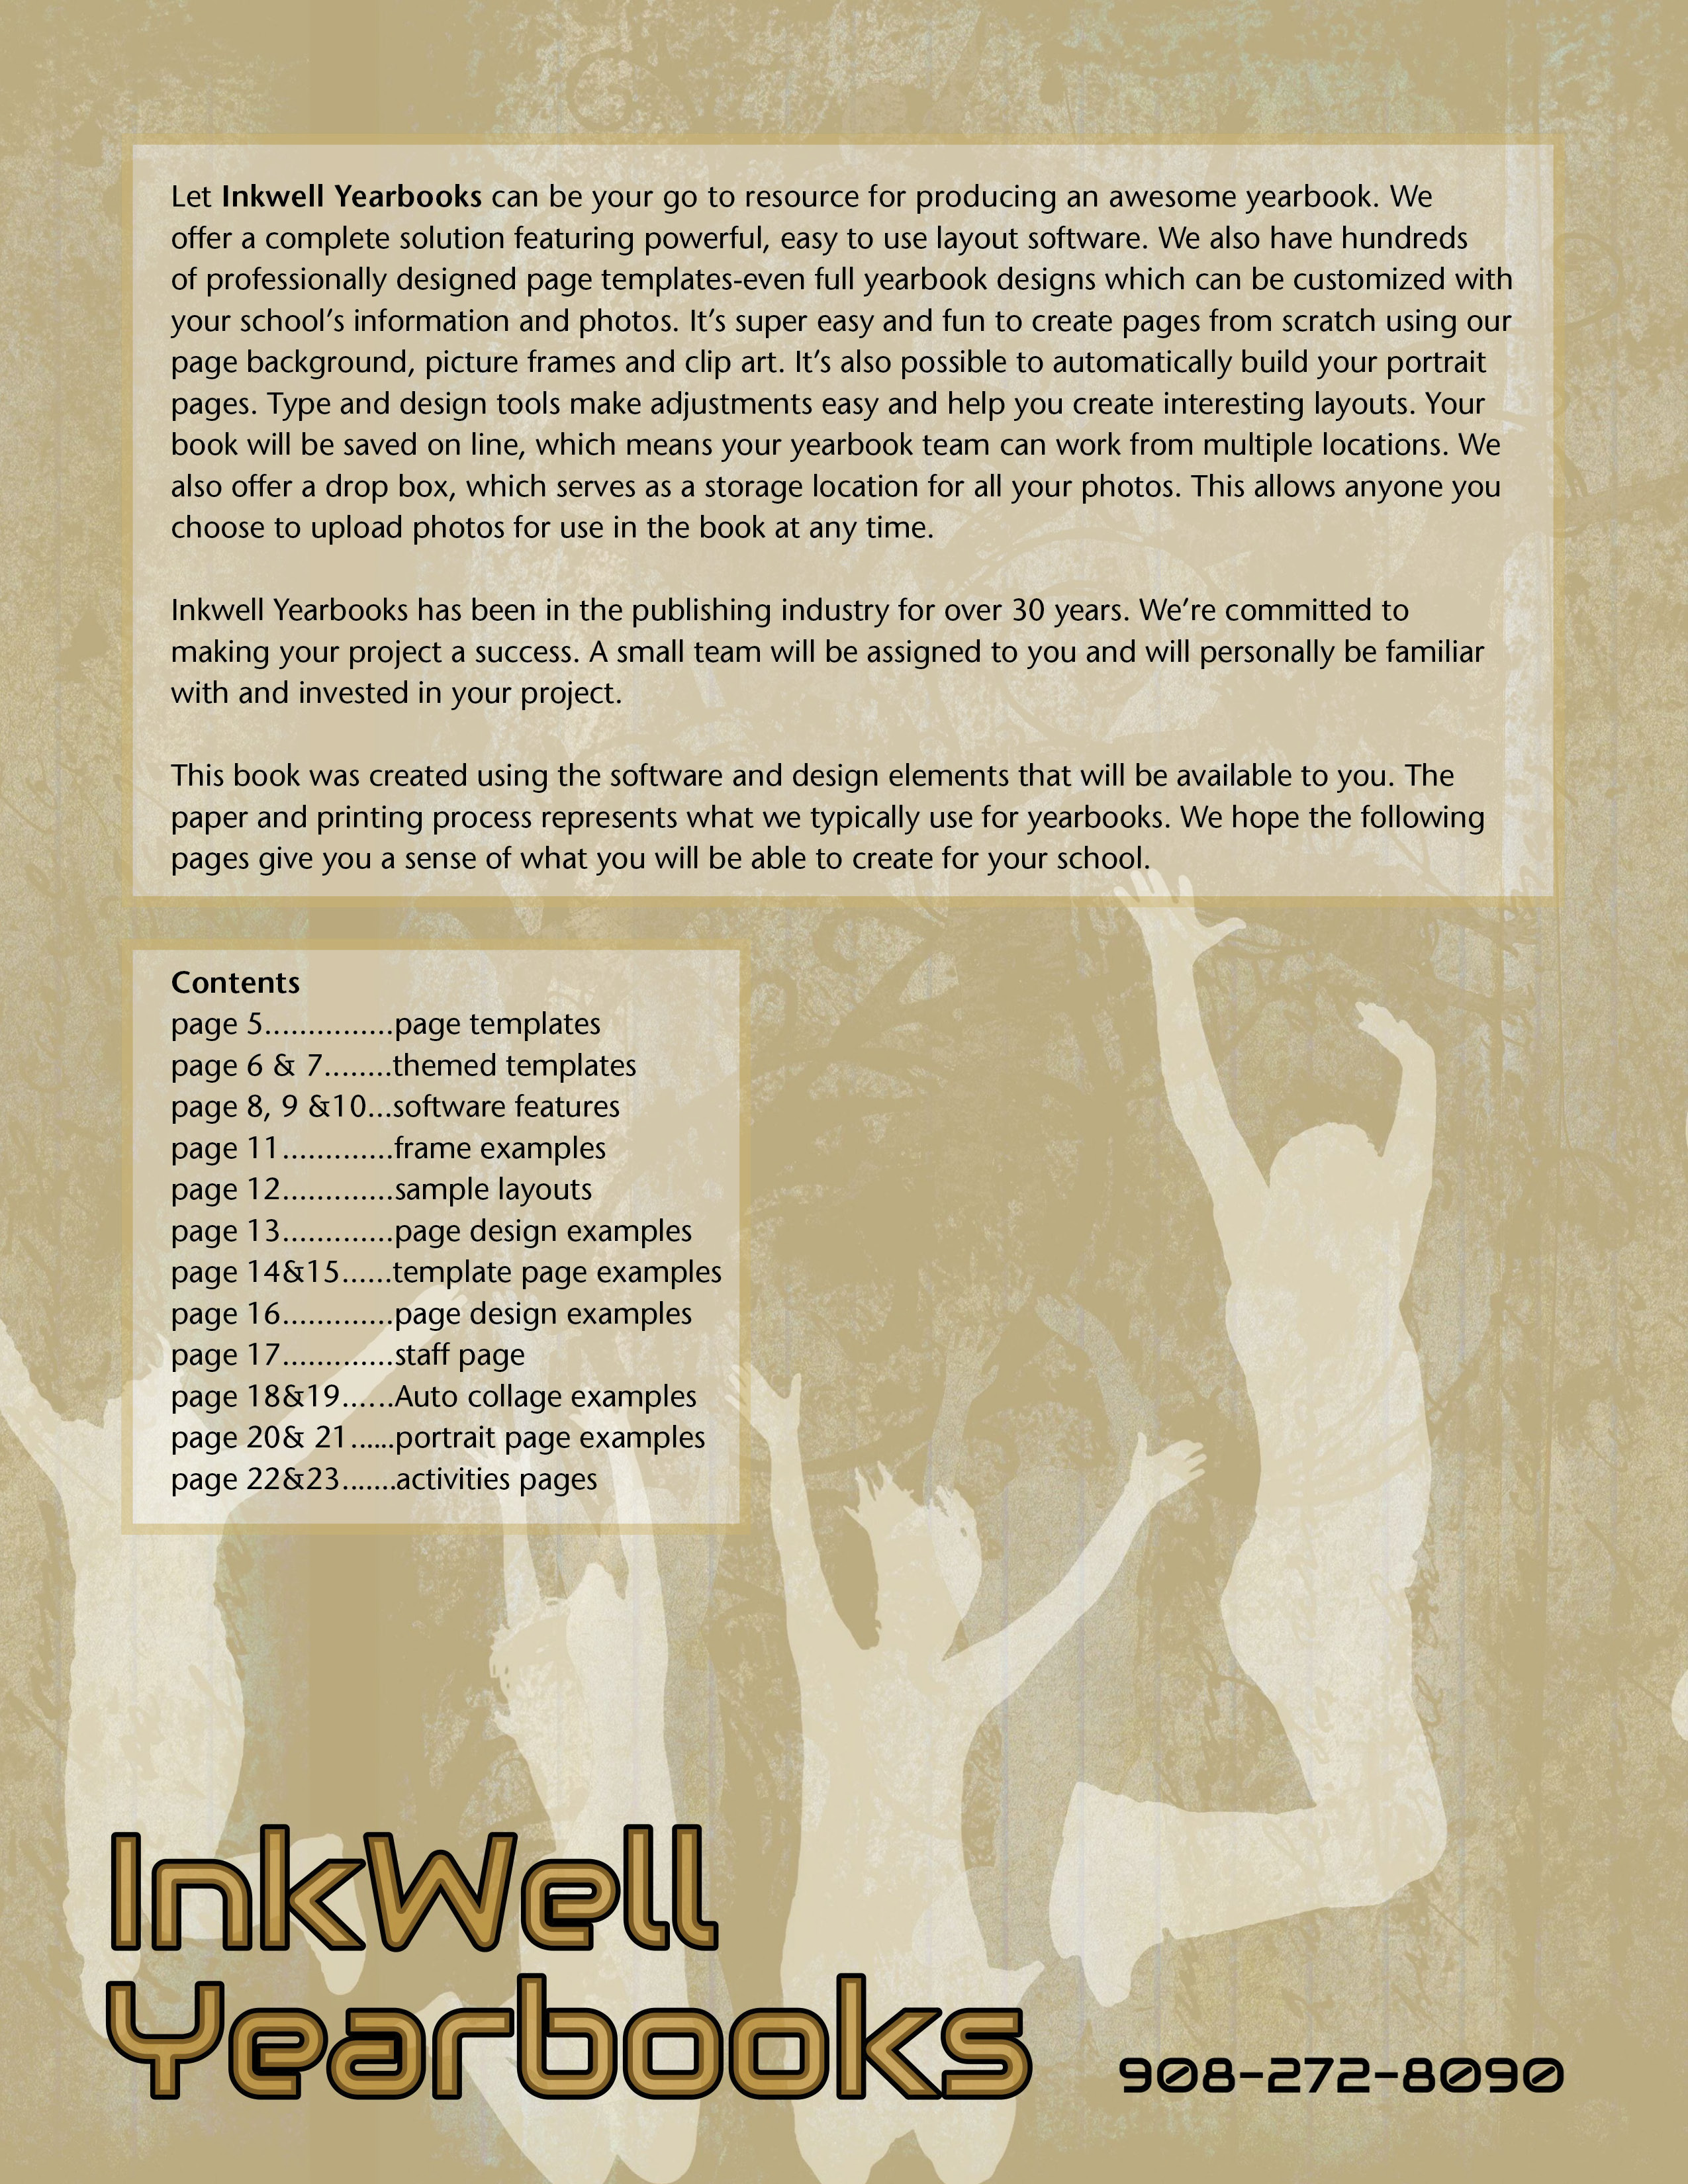 inkwell-yearbooks-layout-sample-pages-1